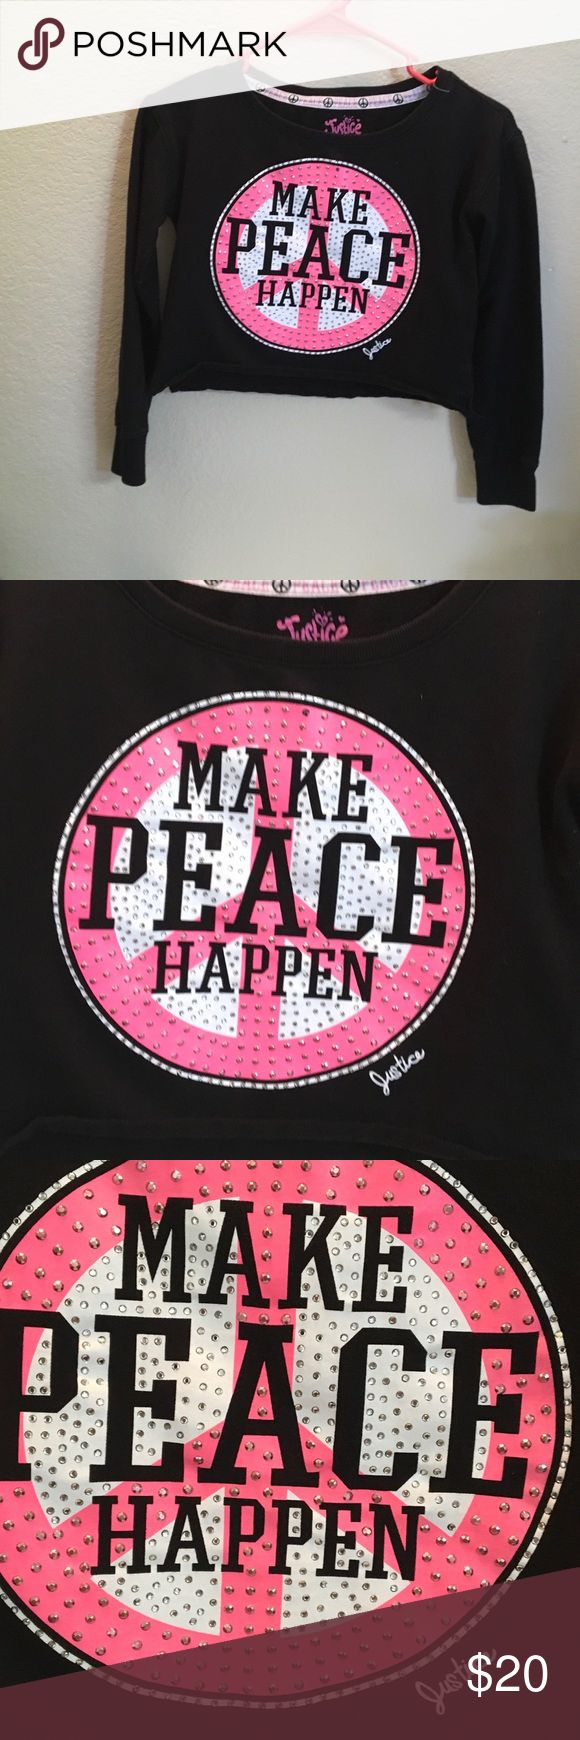 Justice black sweat shirt PEACE Message STUDS 10 Solid black cotton Poly bled long sleeved sweatshirt Knit top. Center design circle pink black & white w lots of silvery studs... MAKE PEACE HAPPEN .... Justice brand always supports the universe and our children. Inside reads.. FOLLOW YOUR DREAMs. Sz 10 Justice Shirts & Tops